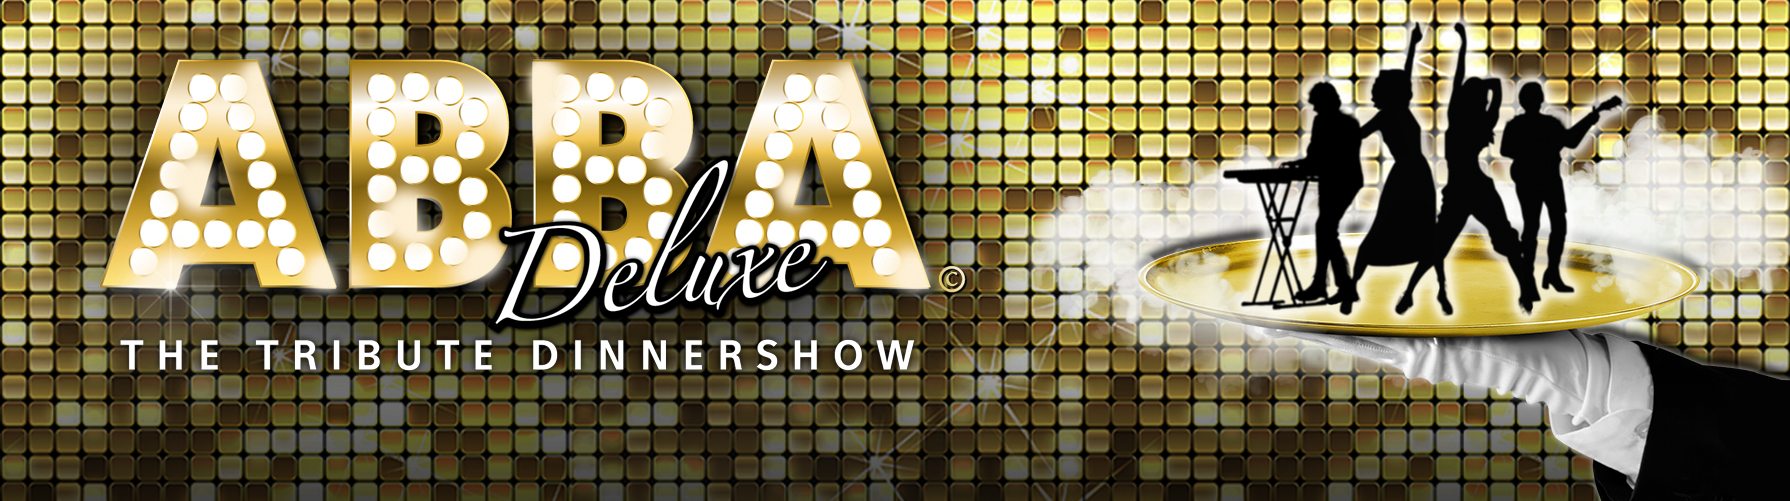 ABBA DINNER The Tribute Dinnershow mit ABBA DELUXE